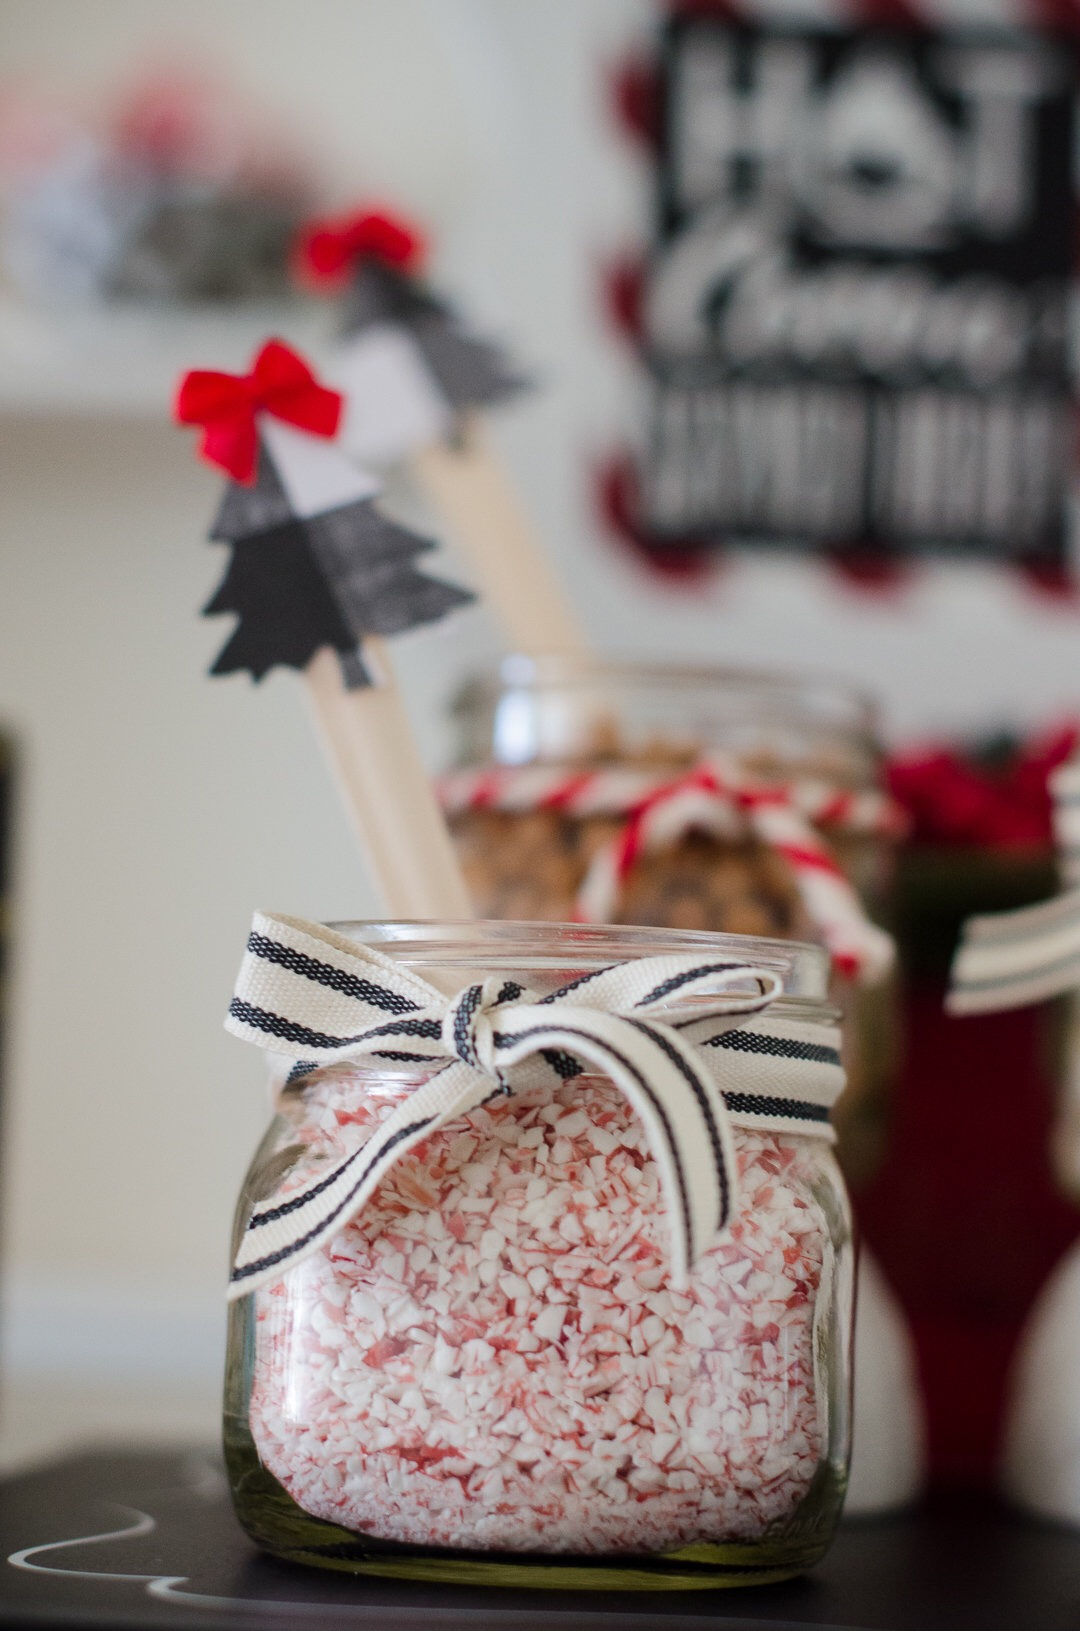 Peppermint toppings at a Christmas Hot Cocoa Station. Love the black and white ribbon tied around the mason jar. See more holiday party inspiration from Austin based party stylist Mint Event Design at www.minteventdesign.com #holidayparty #holidays #partyideas #christmasparty #holidaypartyideas #hotcocoabar #hotcocoa